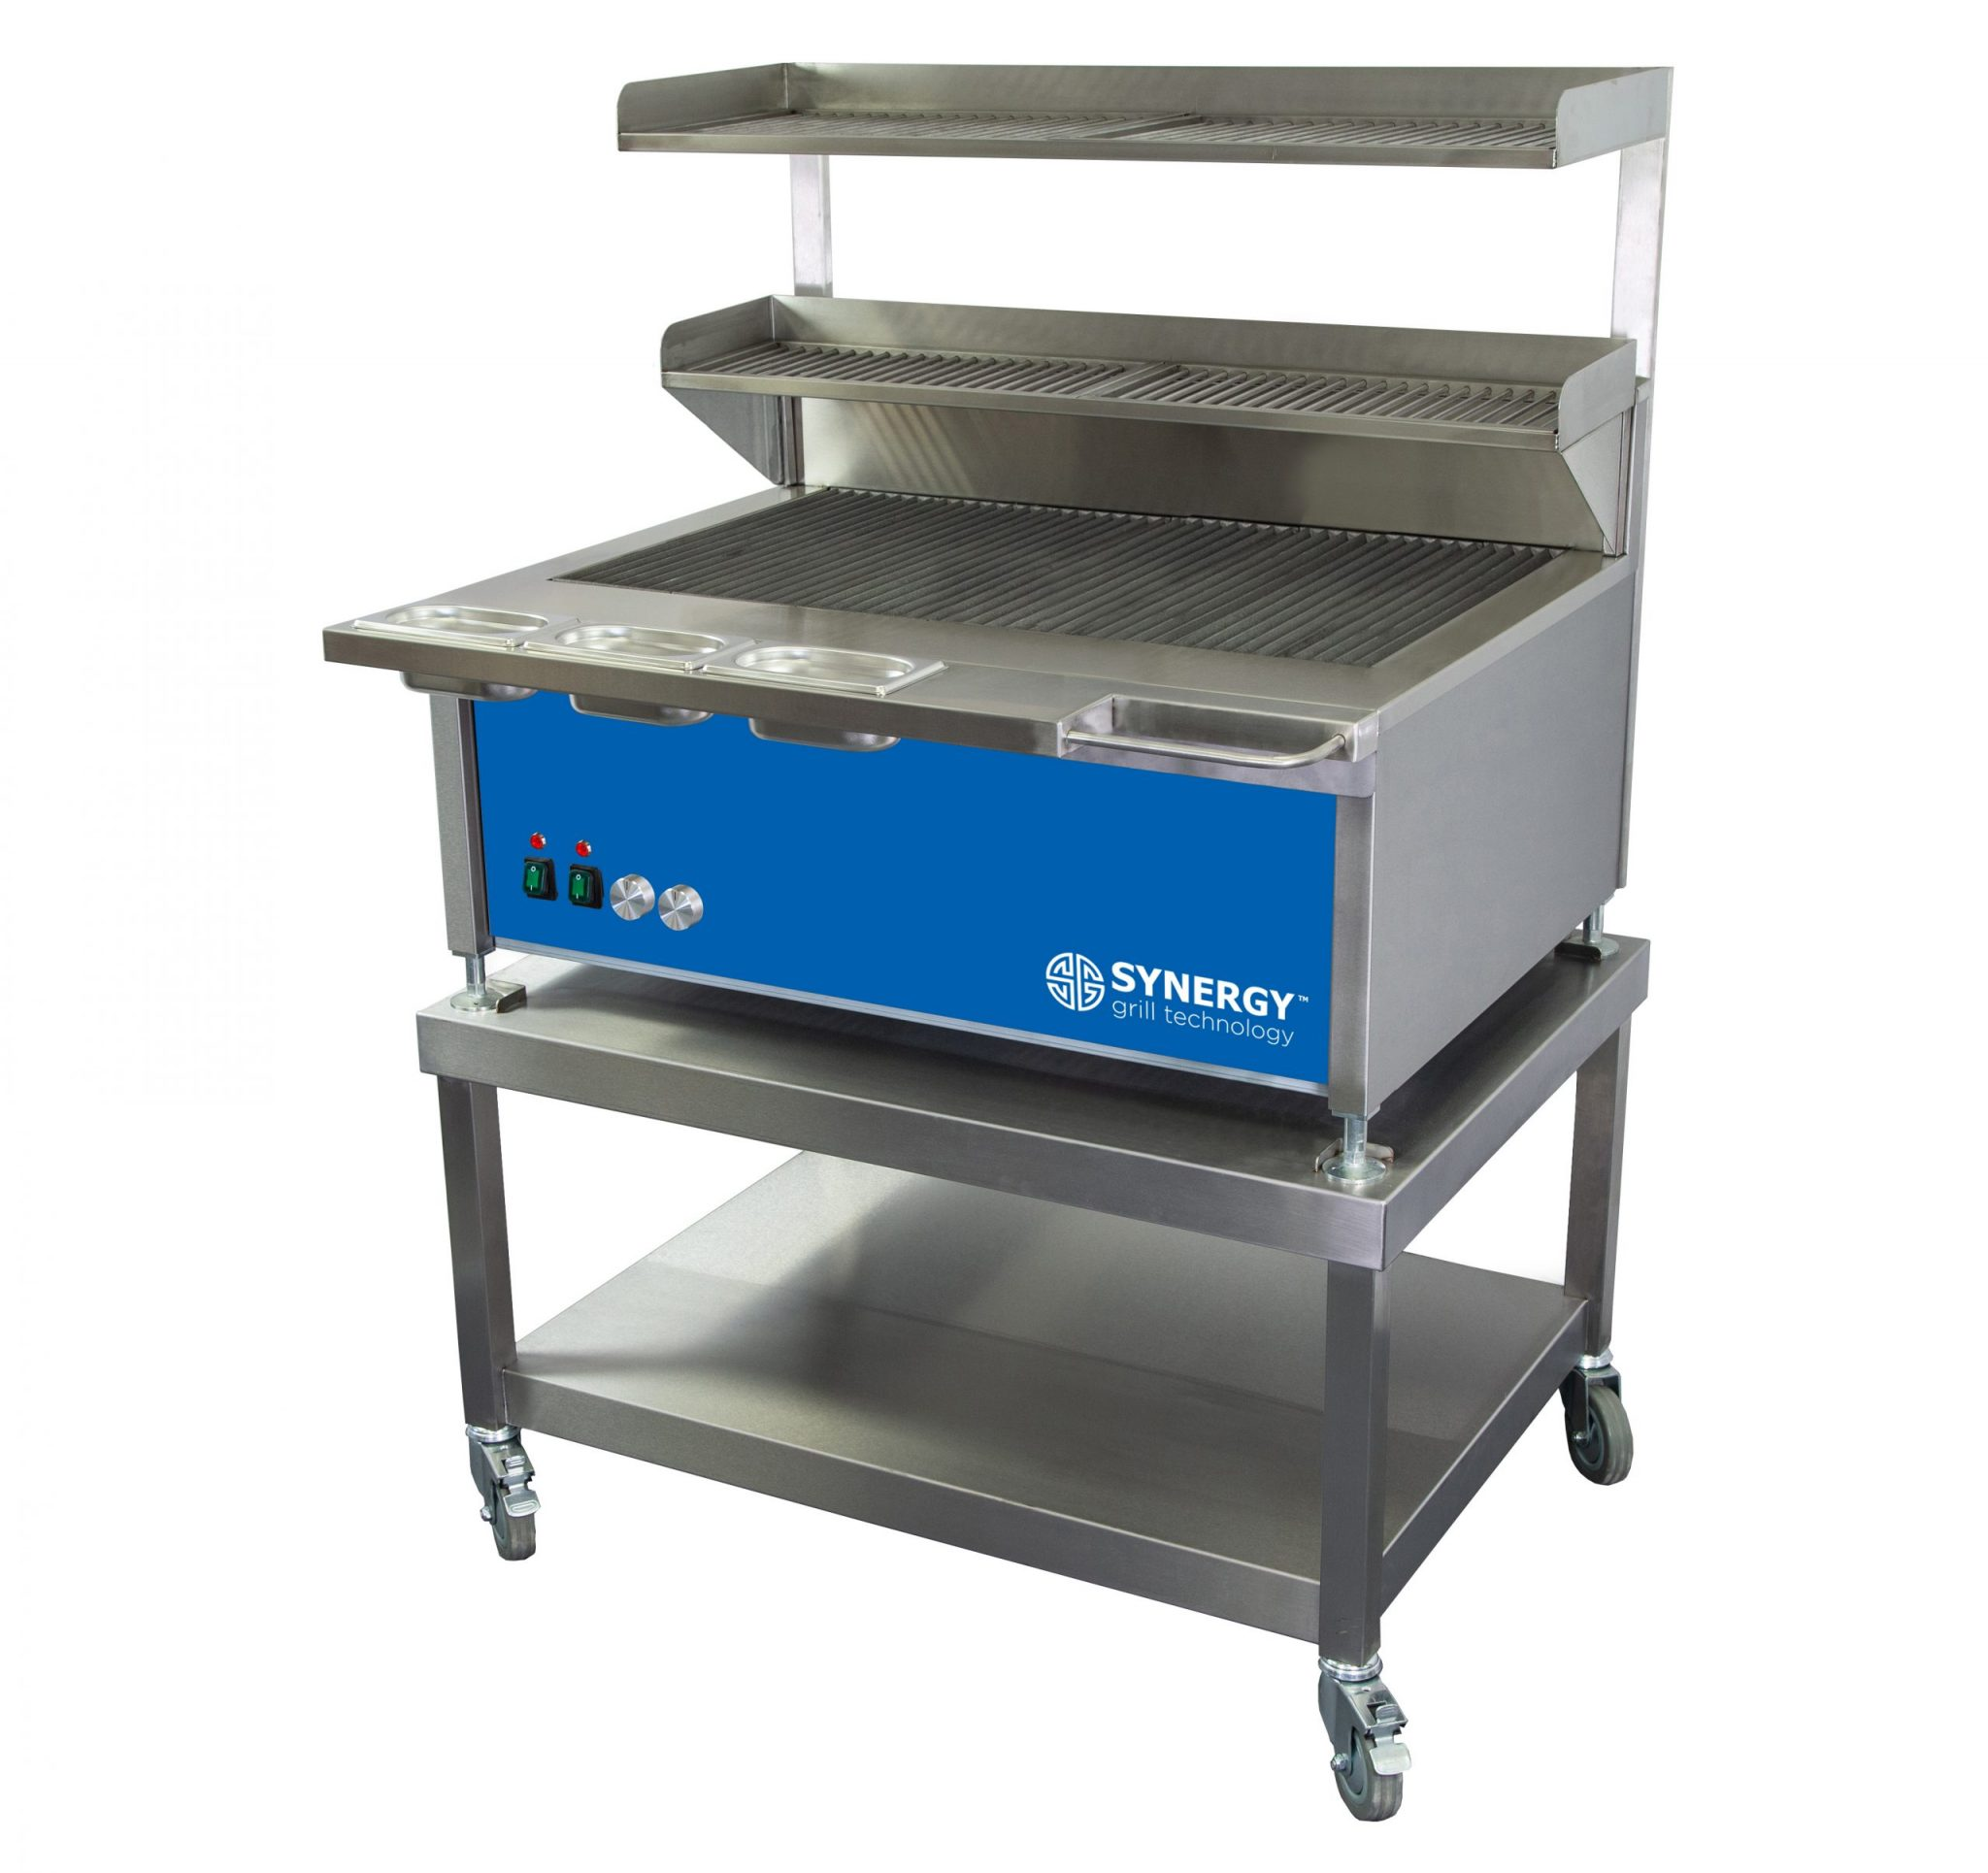 Synergy Grill Trilogy ST900D Blue with Mobile Table